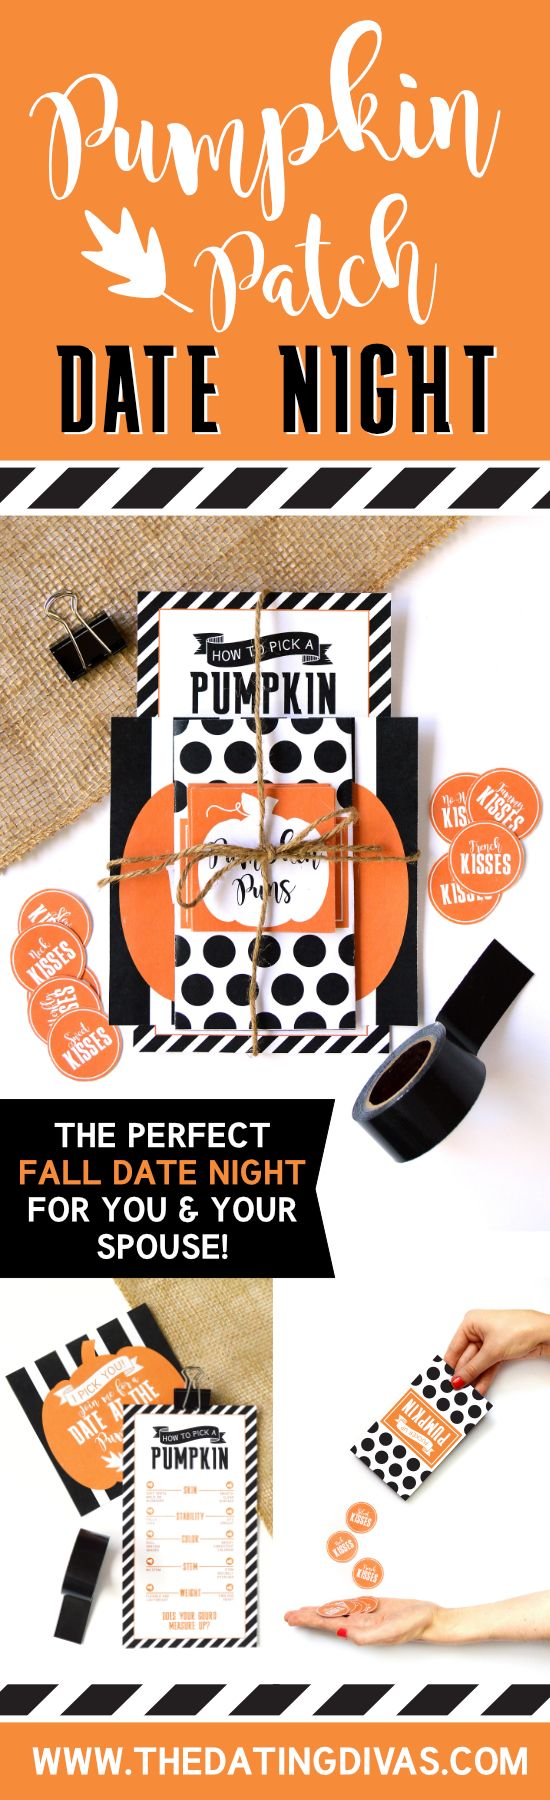 The perfect fall date for you and your sweetie! Includes a printable pack to help make your visit to the pumpkin patch one you'll never forget!